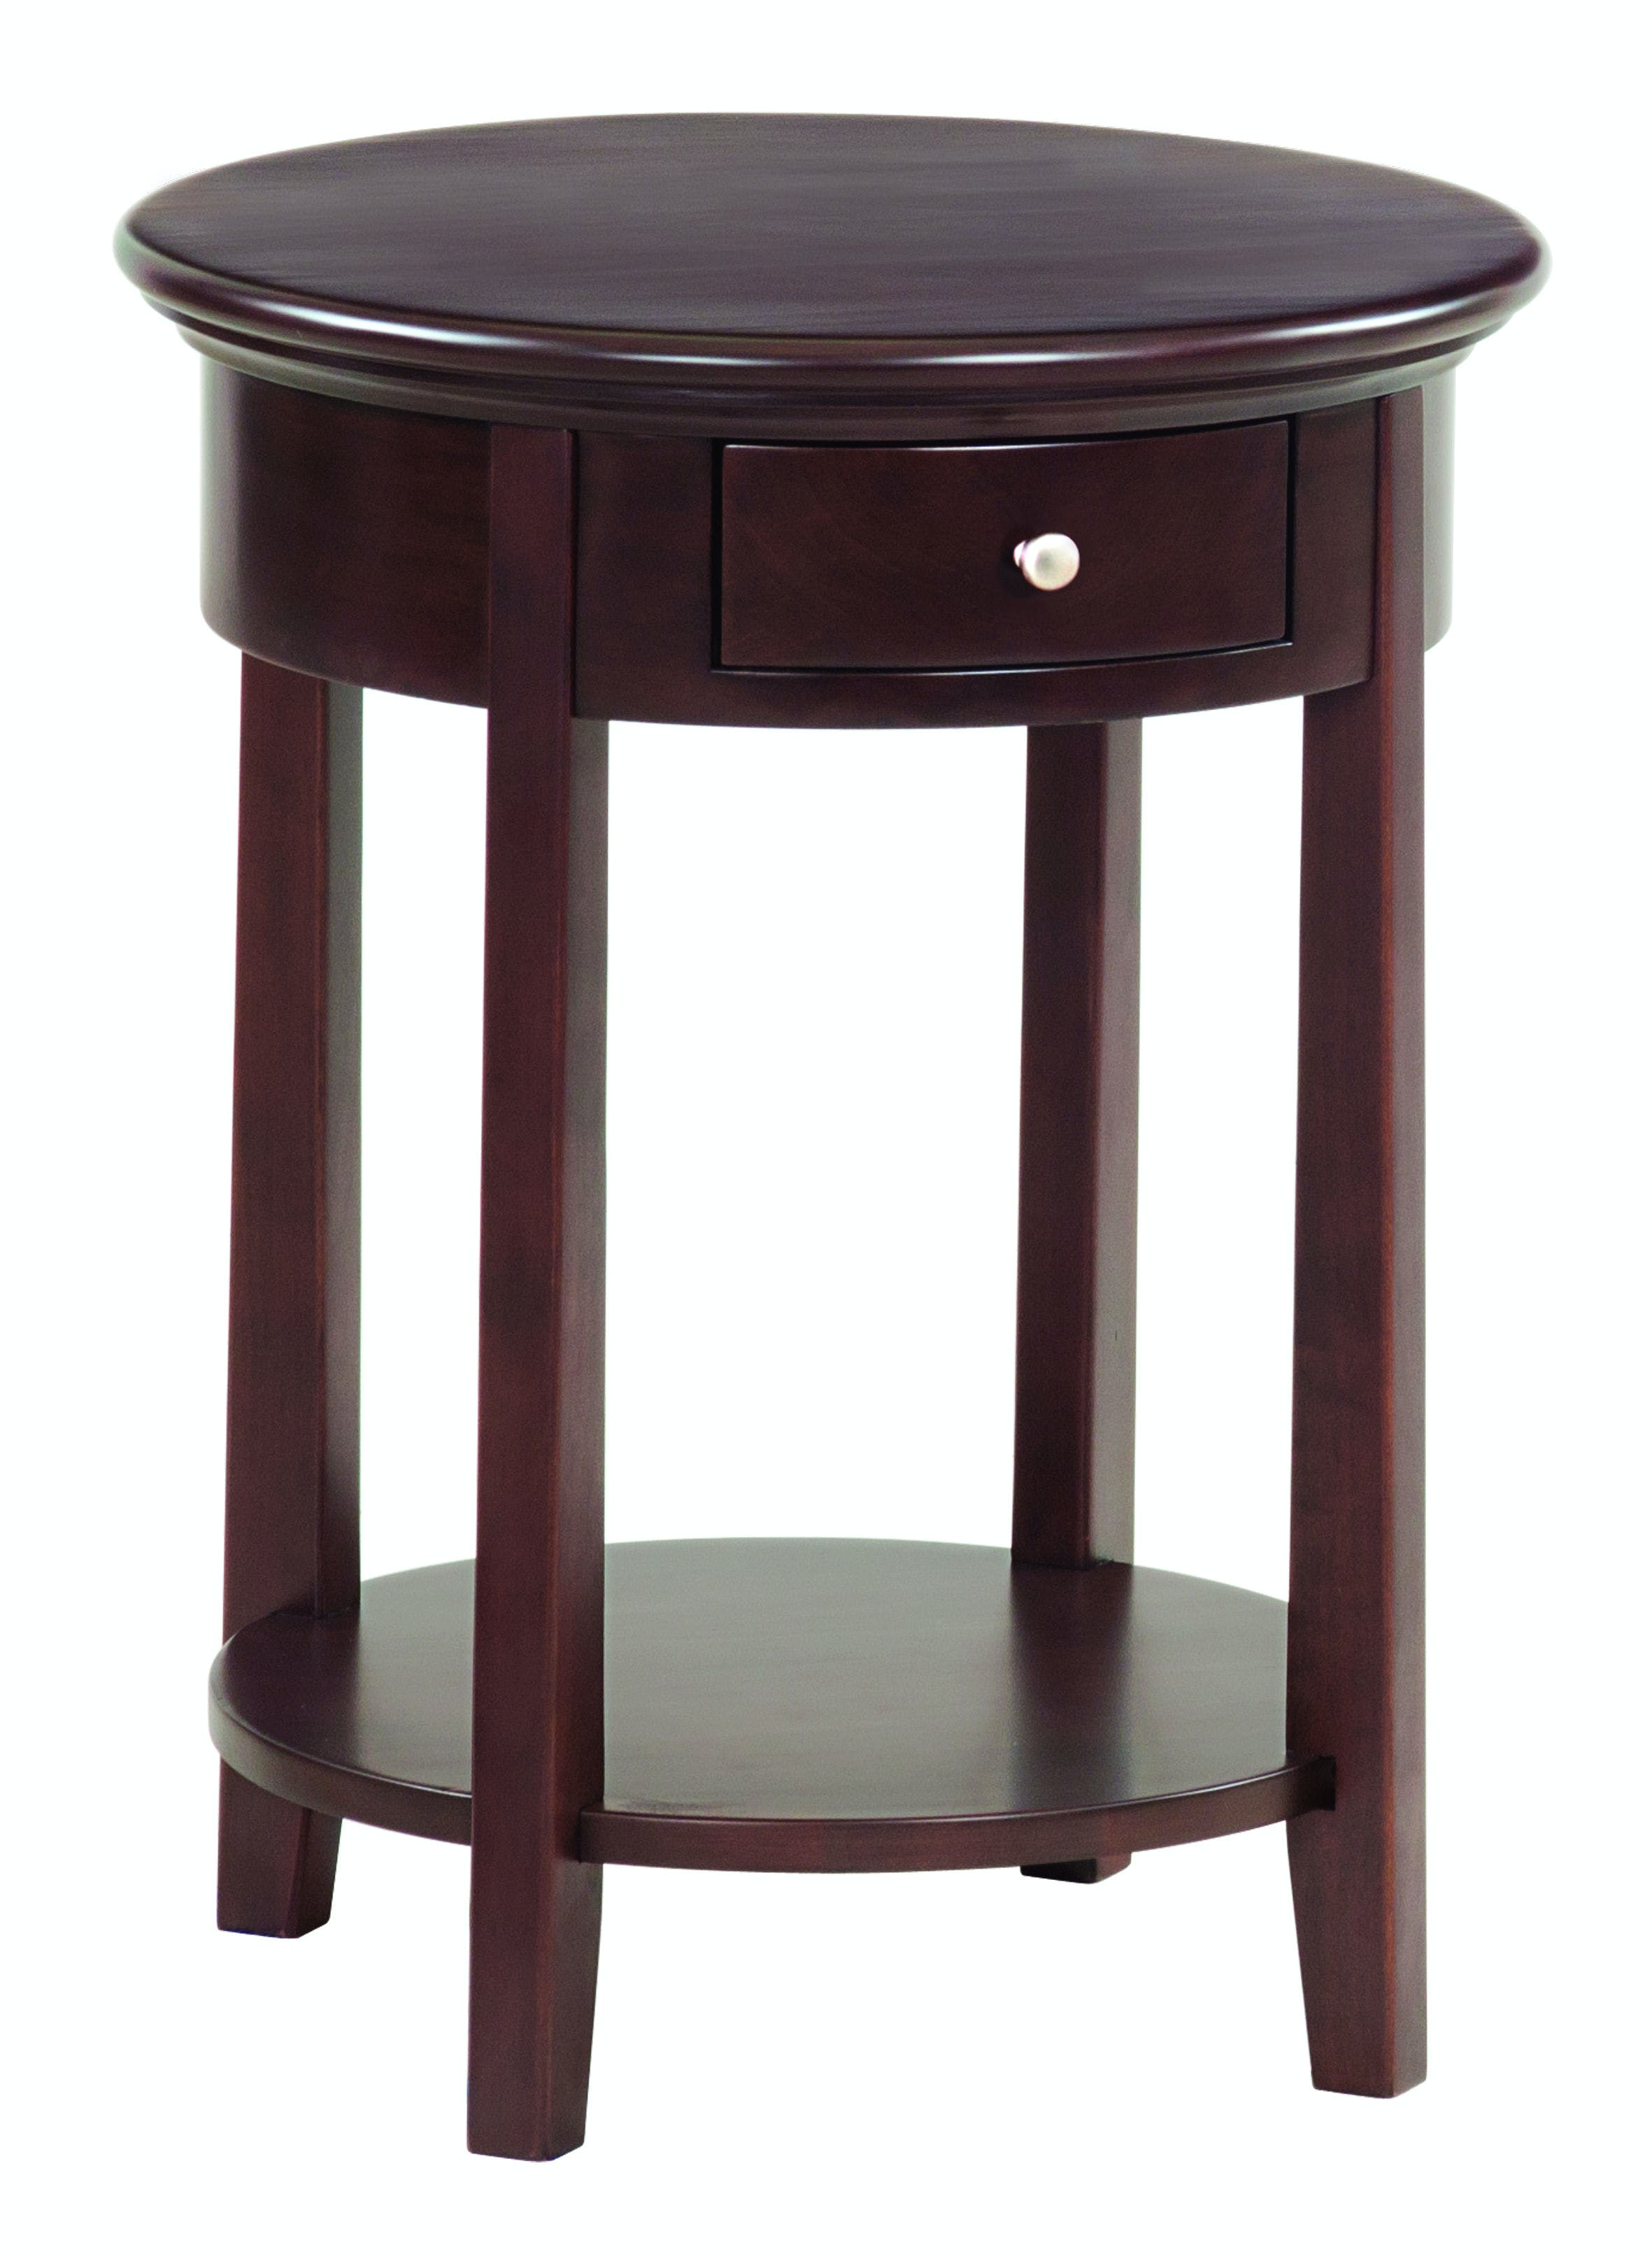 Whittier Wood Products Caf Mckenzie Round Side Table 3495caf